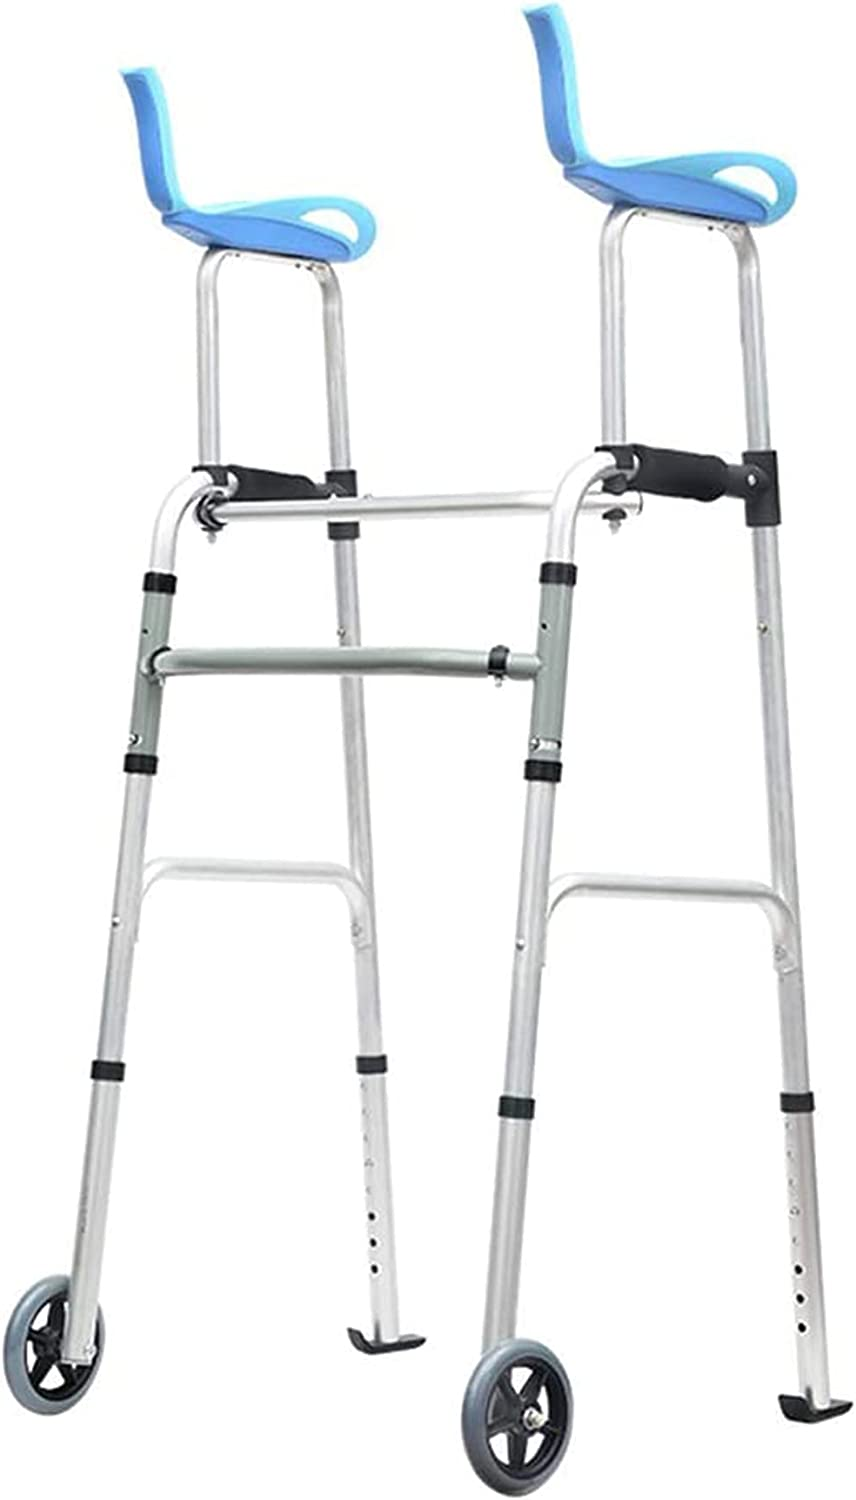 DONGSHUAI Compact Folding Walker with for Seniors Support Arm Over item handling Ranking TOP17 A